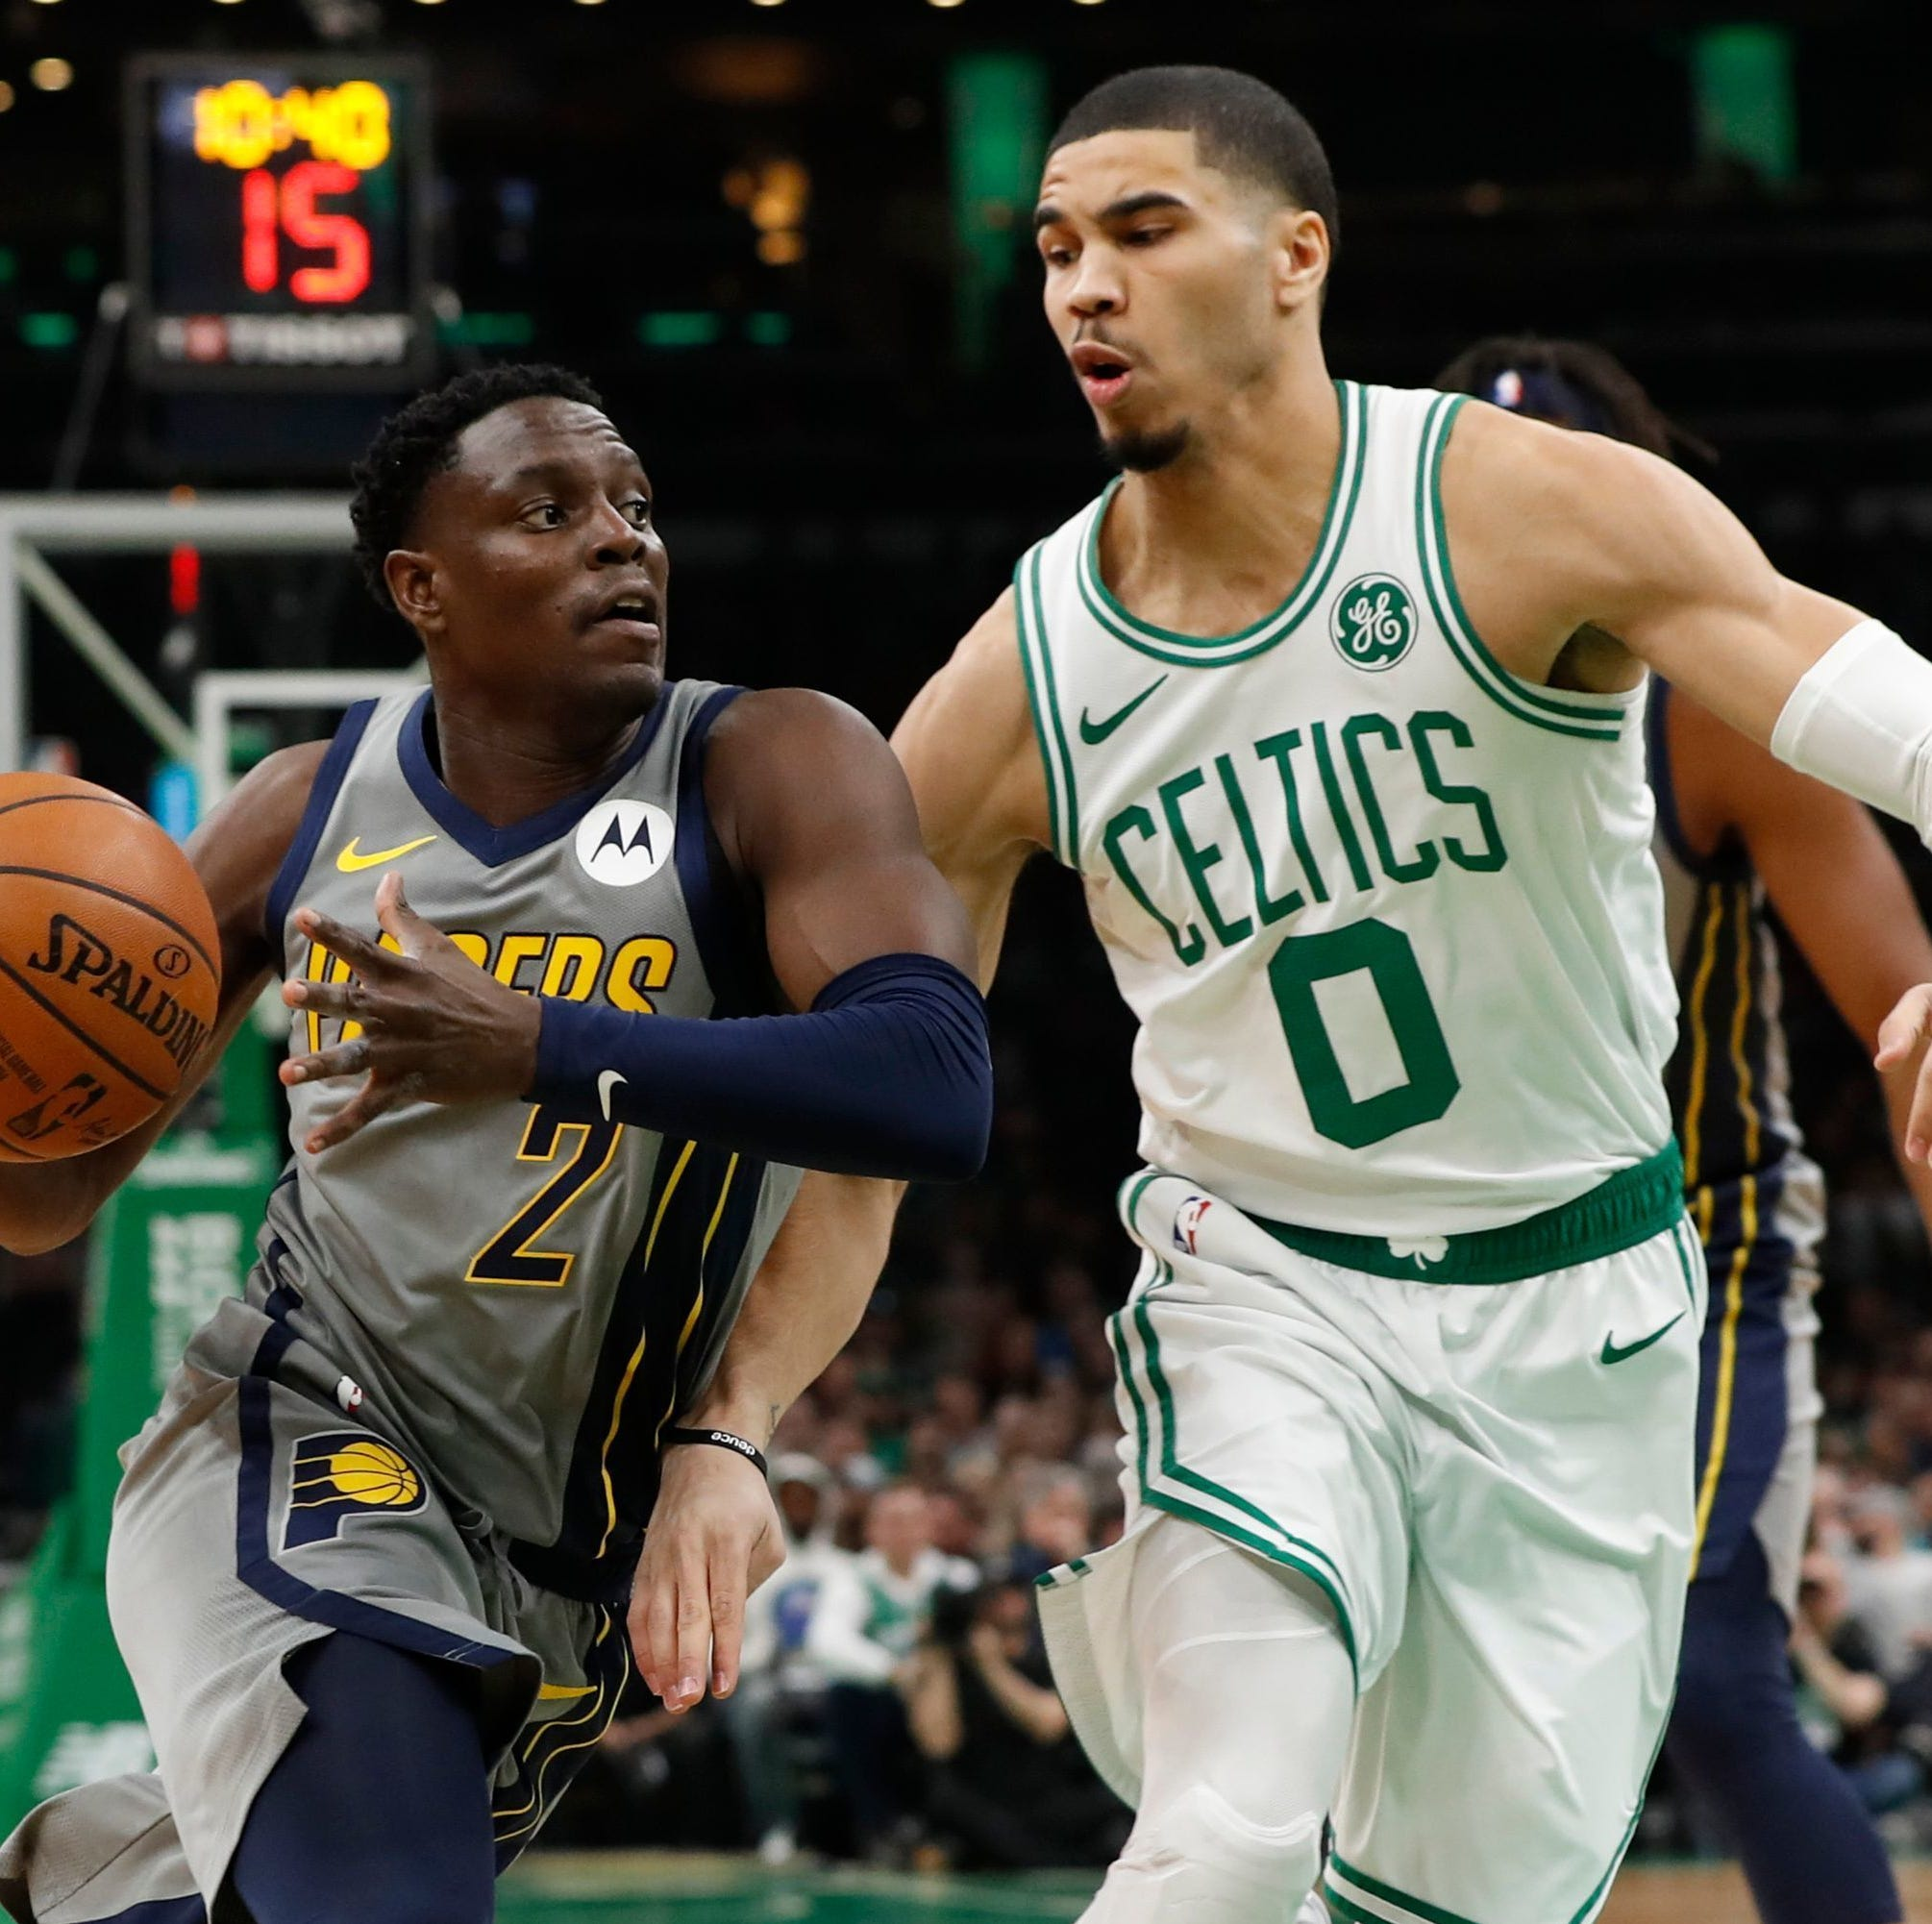 Pacers vs. Celtics 2019: What you should know about the NBA playoffs